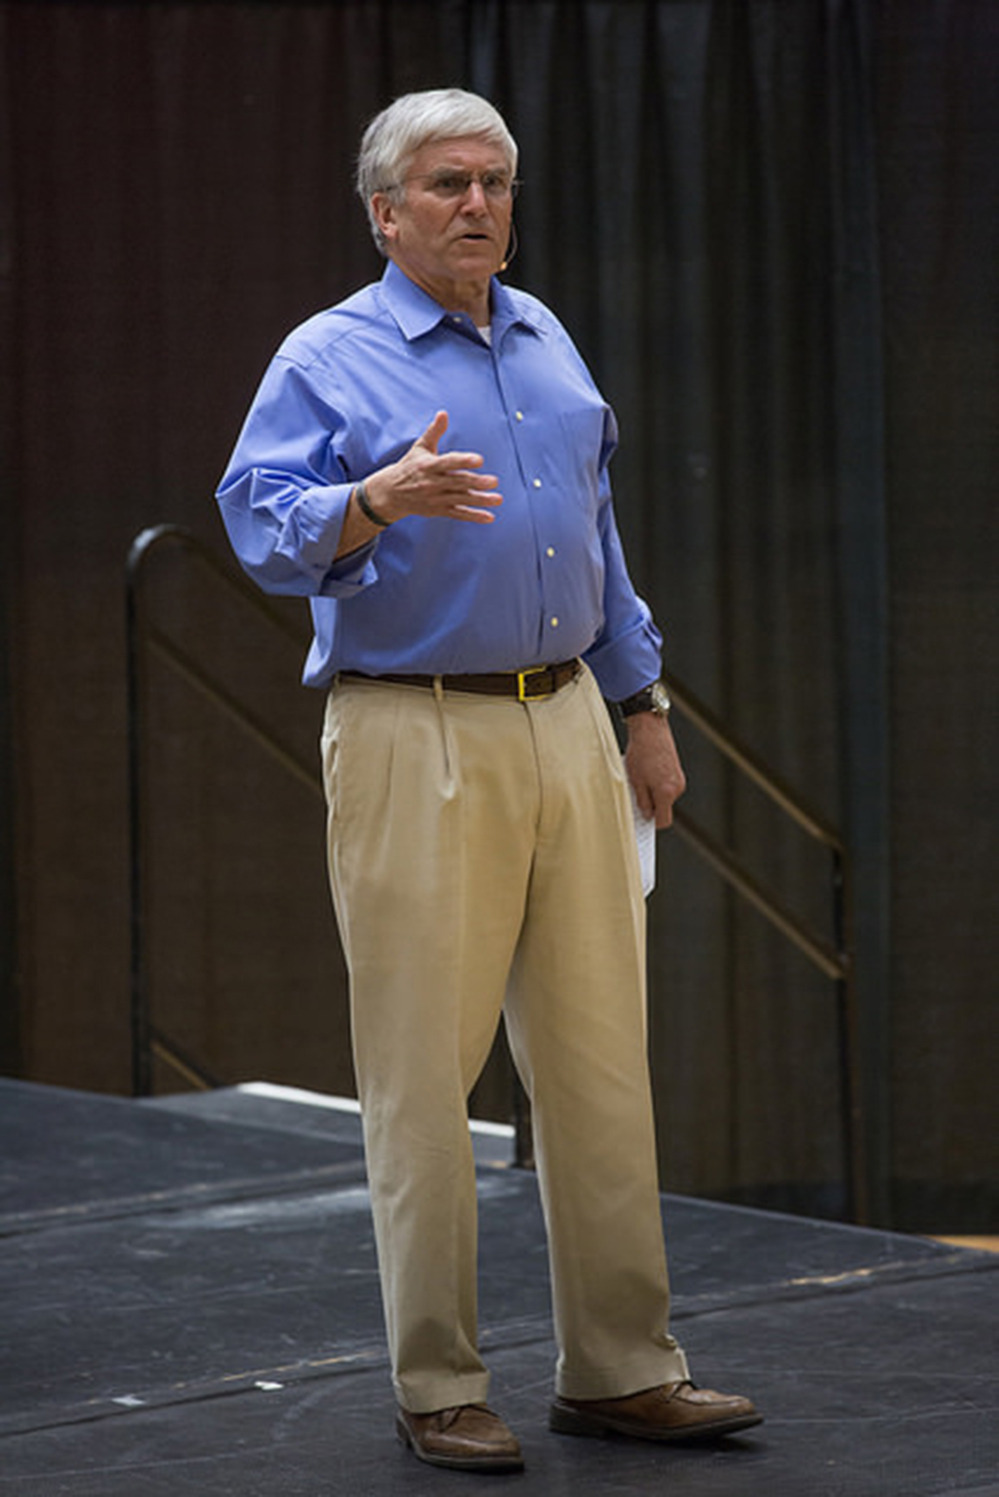 George W. Casey Jr. shared his keys to leadership with DU's Athletics Dept. on Tuesday, Mar. 31